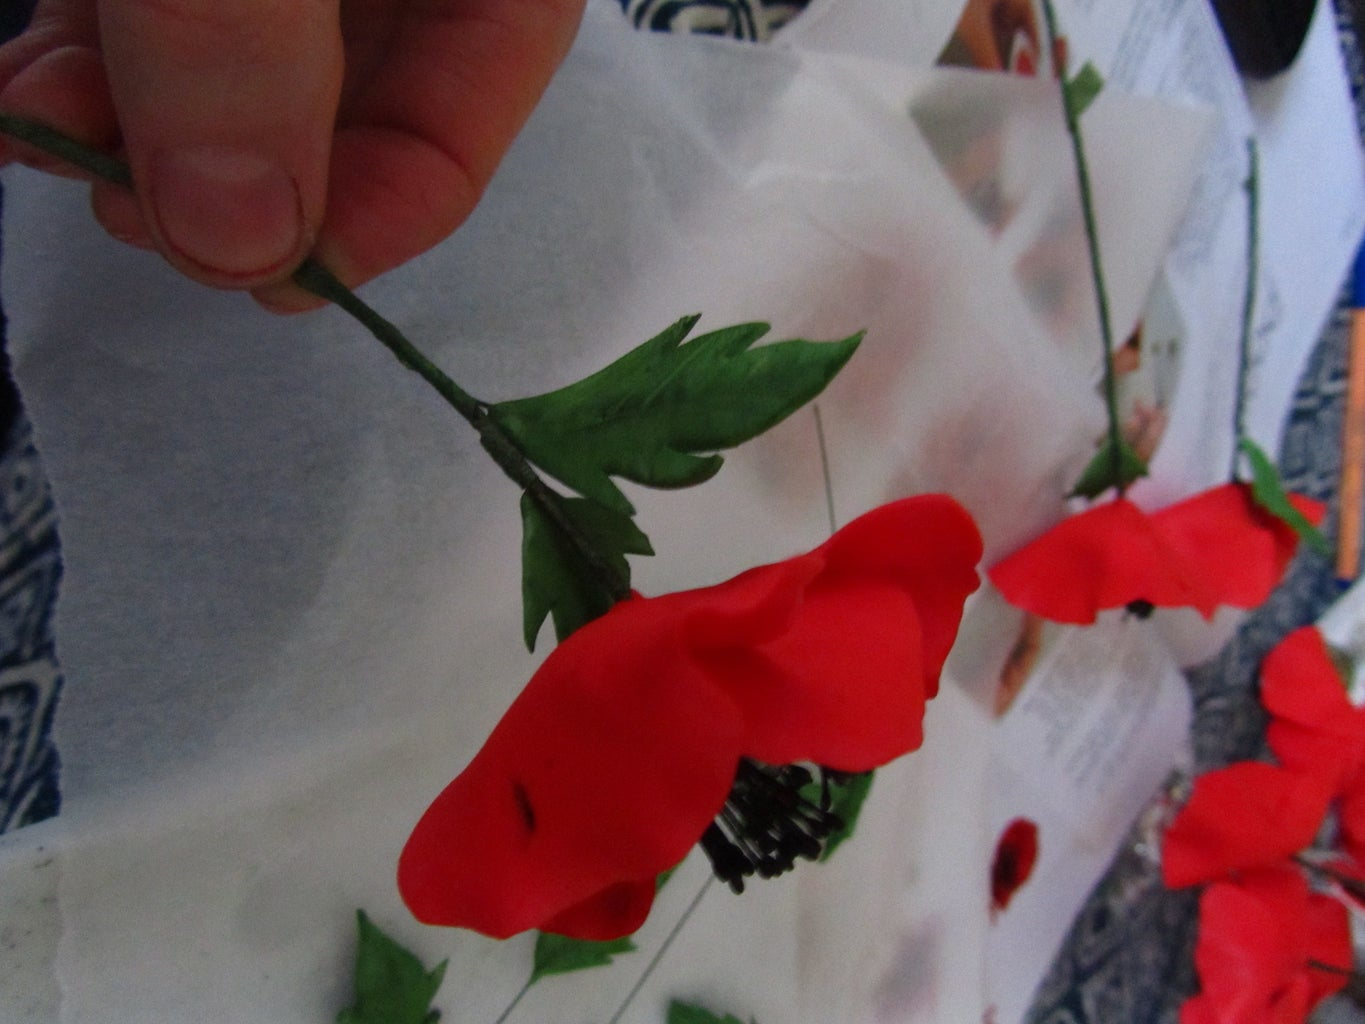 Making Poppies: Assembly